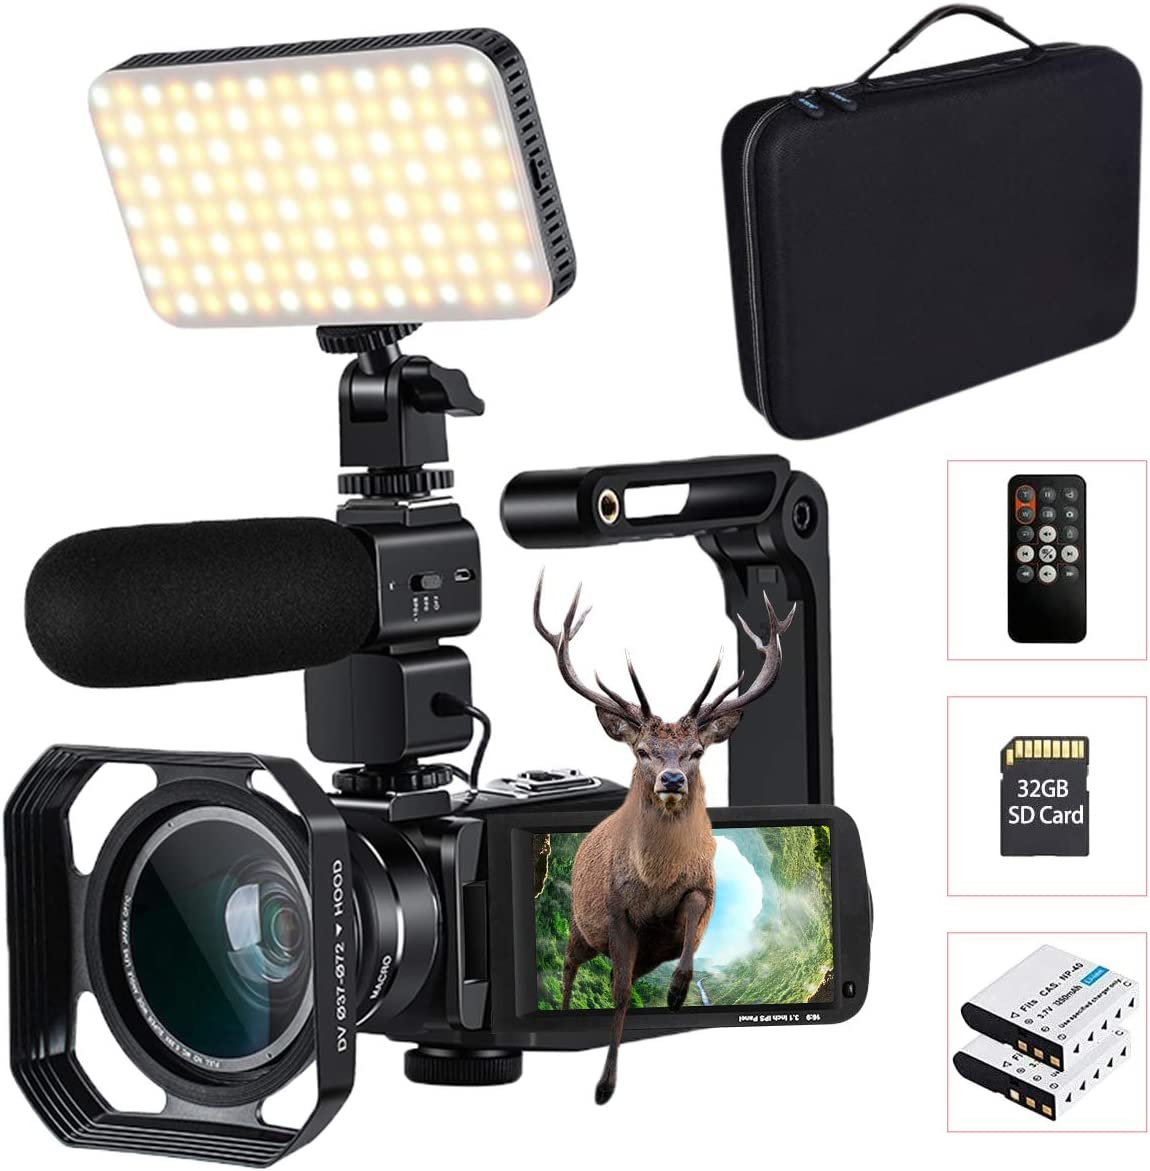 4K Camcorder with 10X Optical Mi Portland Mall Light Overseas parallel import regular item LED Connecting Zoom